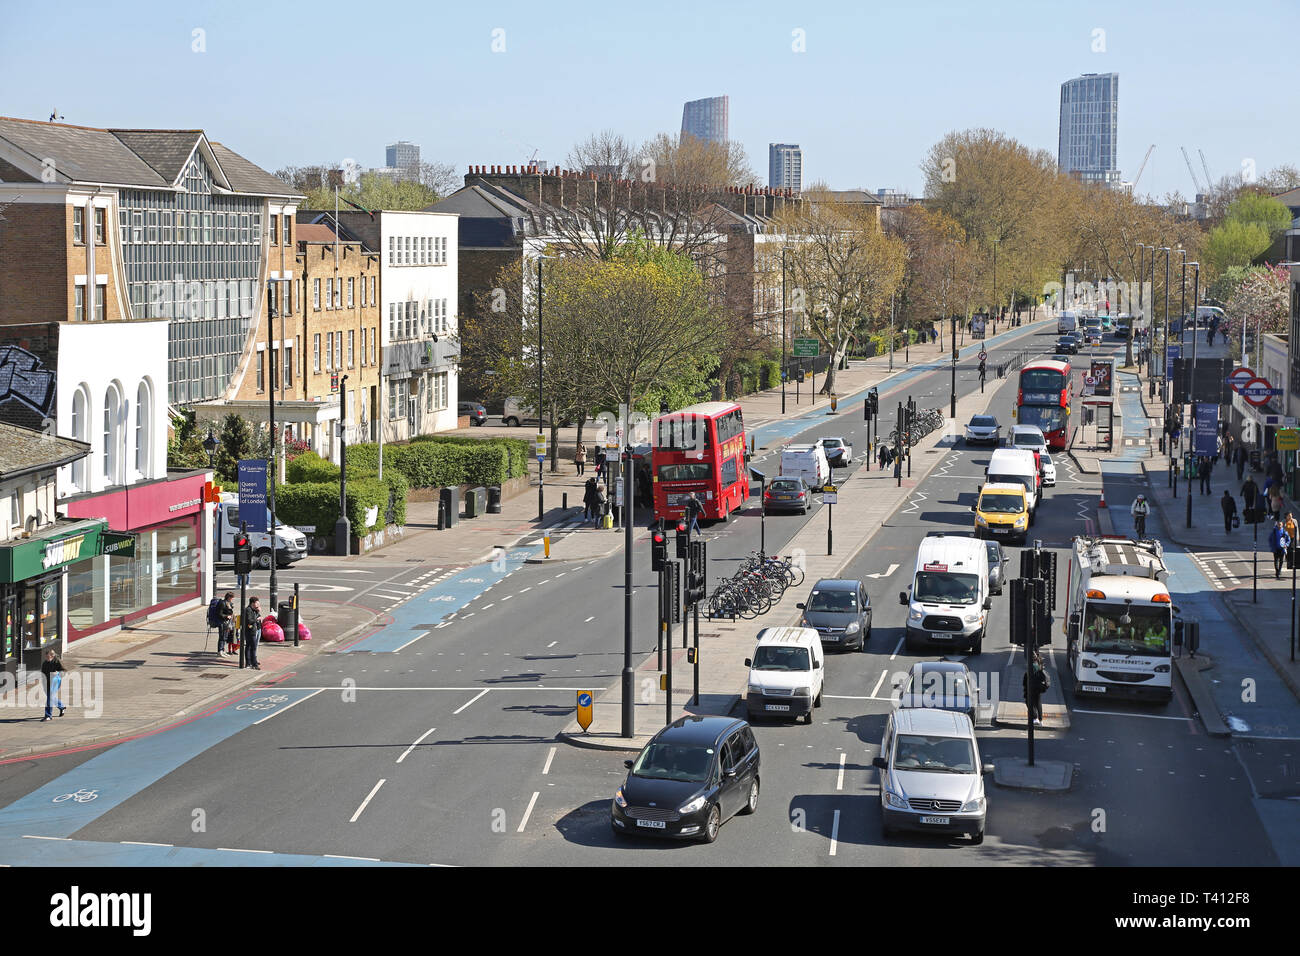 Fully integrated cycle routes on Mile End Road / Bow Road in London's East End. View east towards Bow. Shows cycle supehighway, bus lanes, bus stops. - Stock Image